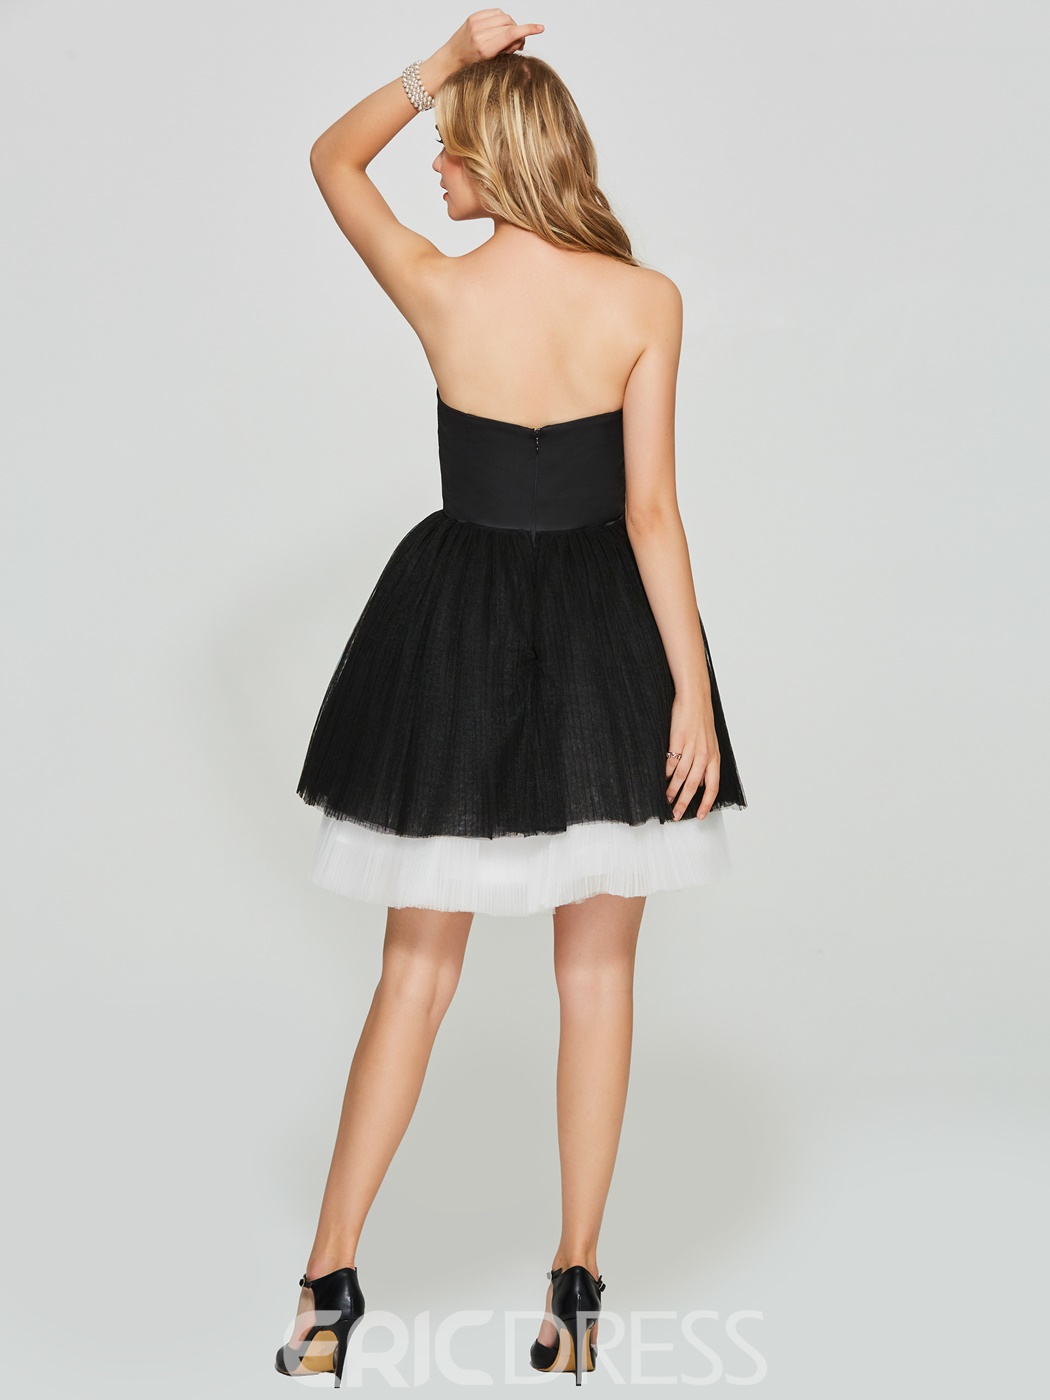 Ericdress Strapless Black And White Zipper-Up Ball Homecoming Dress